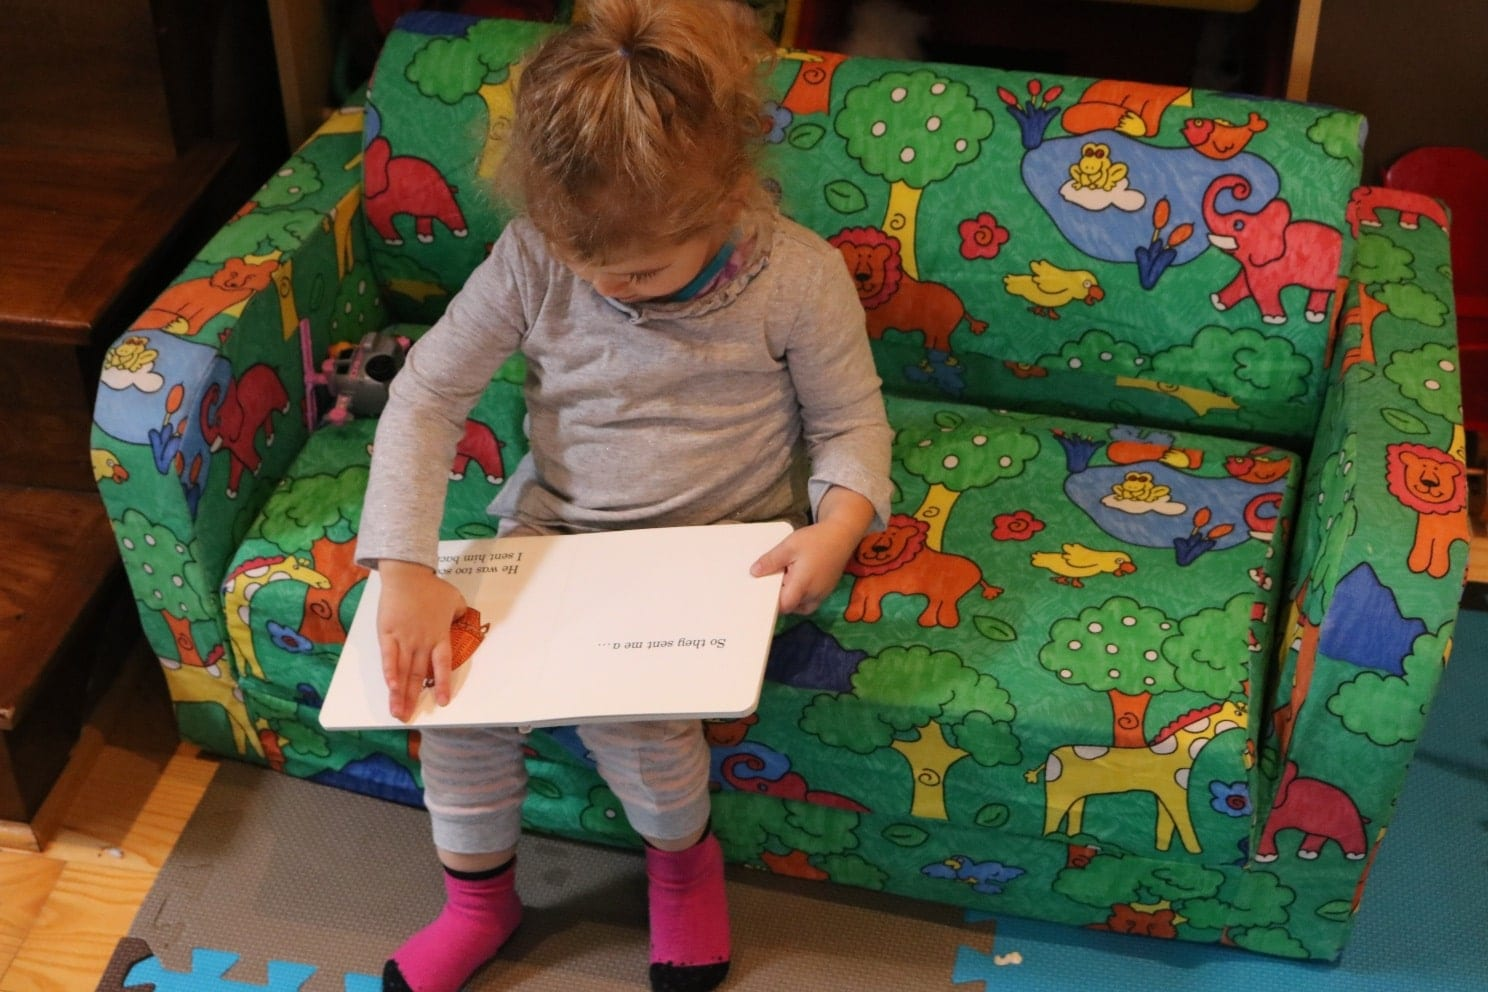 Toddler sitting on a toddler couch in a grey outfit reading a lift the flap book